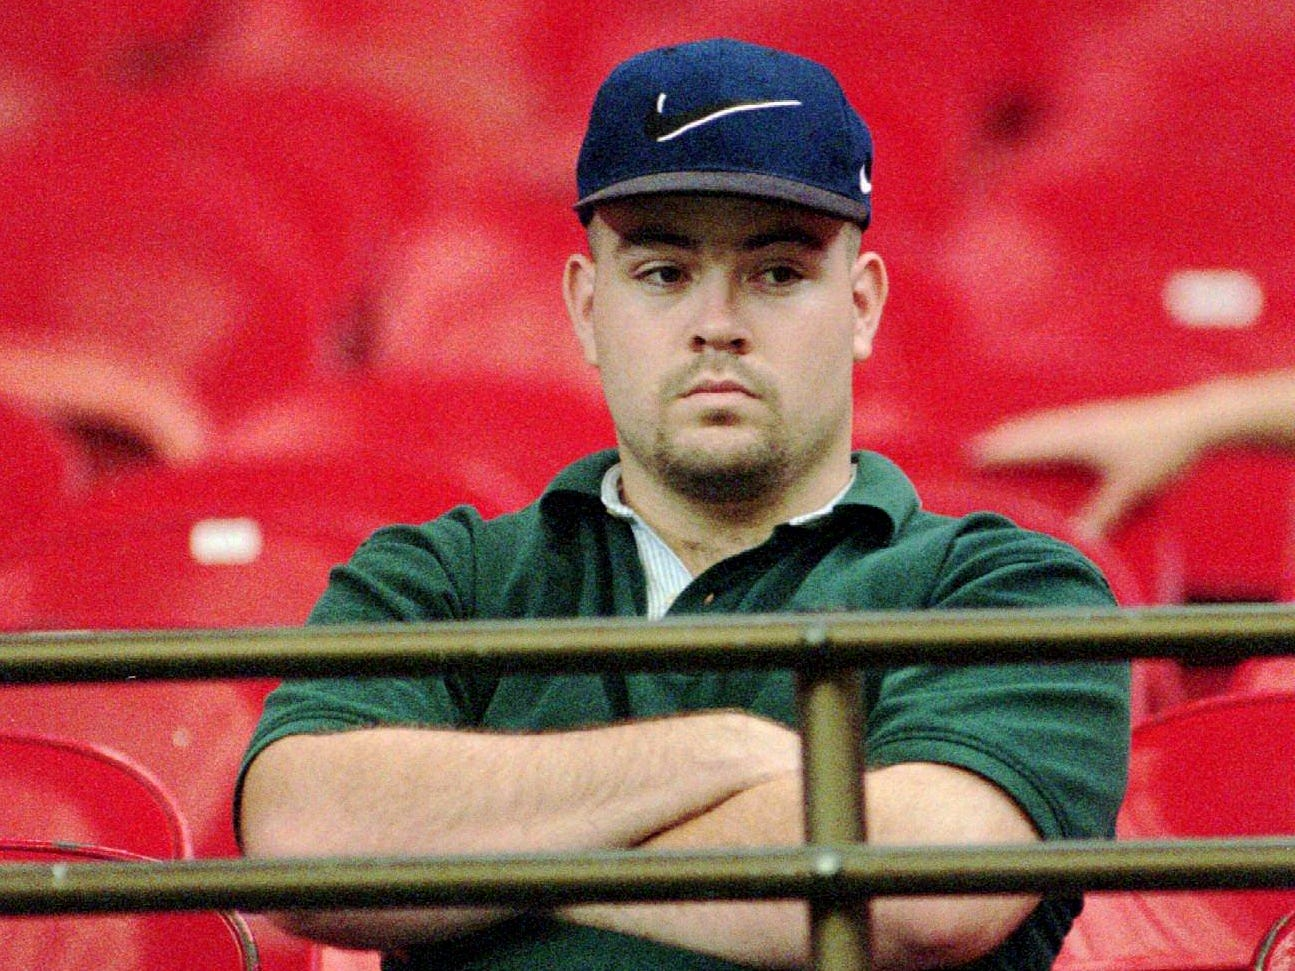 Houston Oilers fan Chris Harris sits alone on the front row in the end zone during the first quarter of the Oilers' Sept. 1, 1996 20-19 loss to the Kansas City Chiefs in Houston. The Oilers are looking at a lonely final season in the Bayou City before they move to Nashville in 1997.